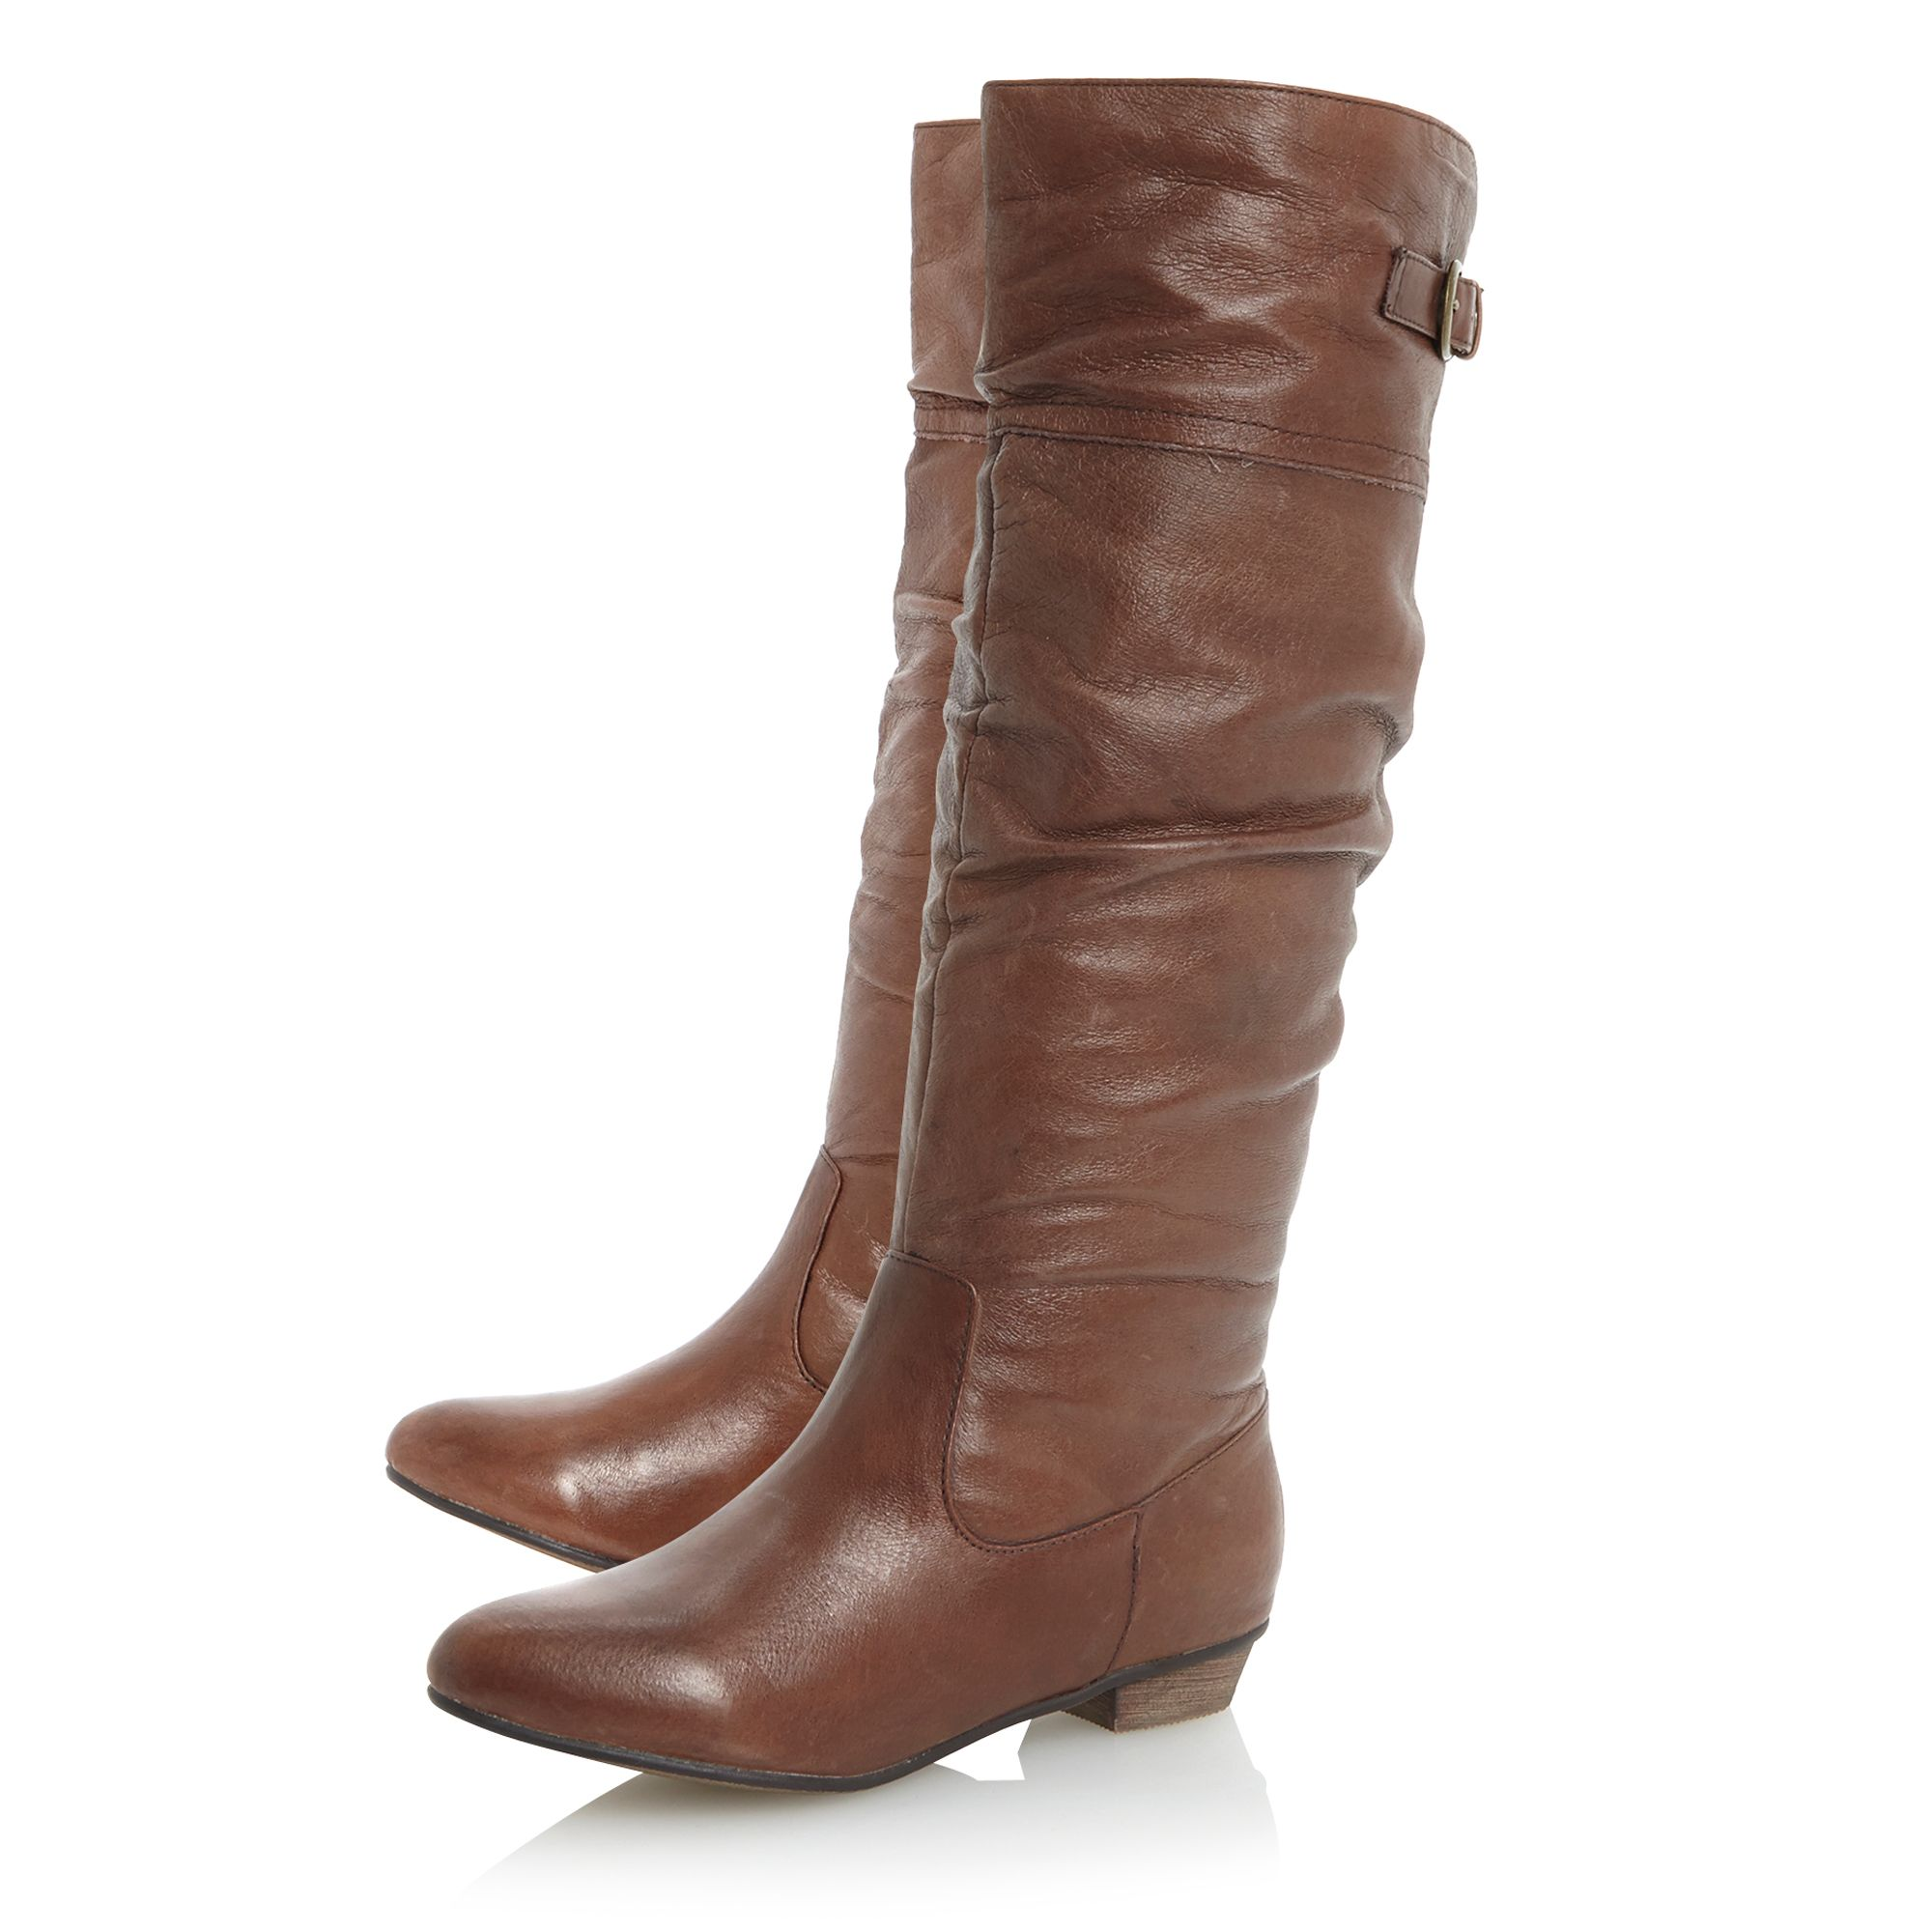 Steve Madden Craave Sm Slouch High Boots in Tan (Brown)